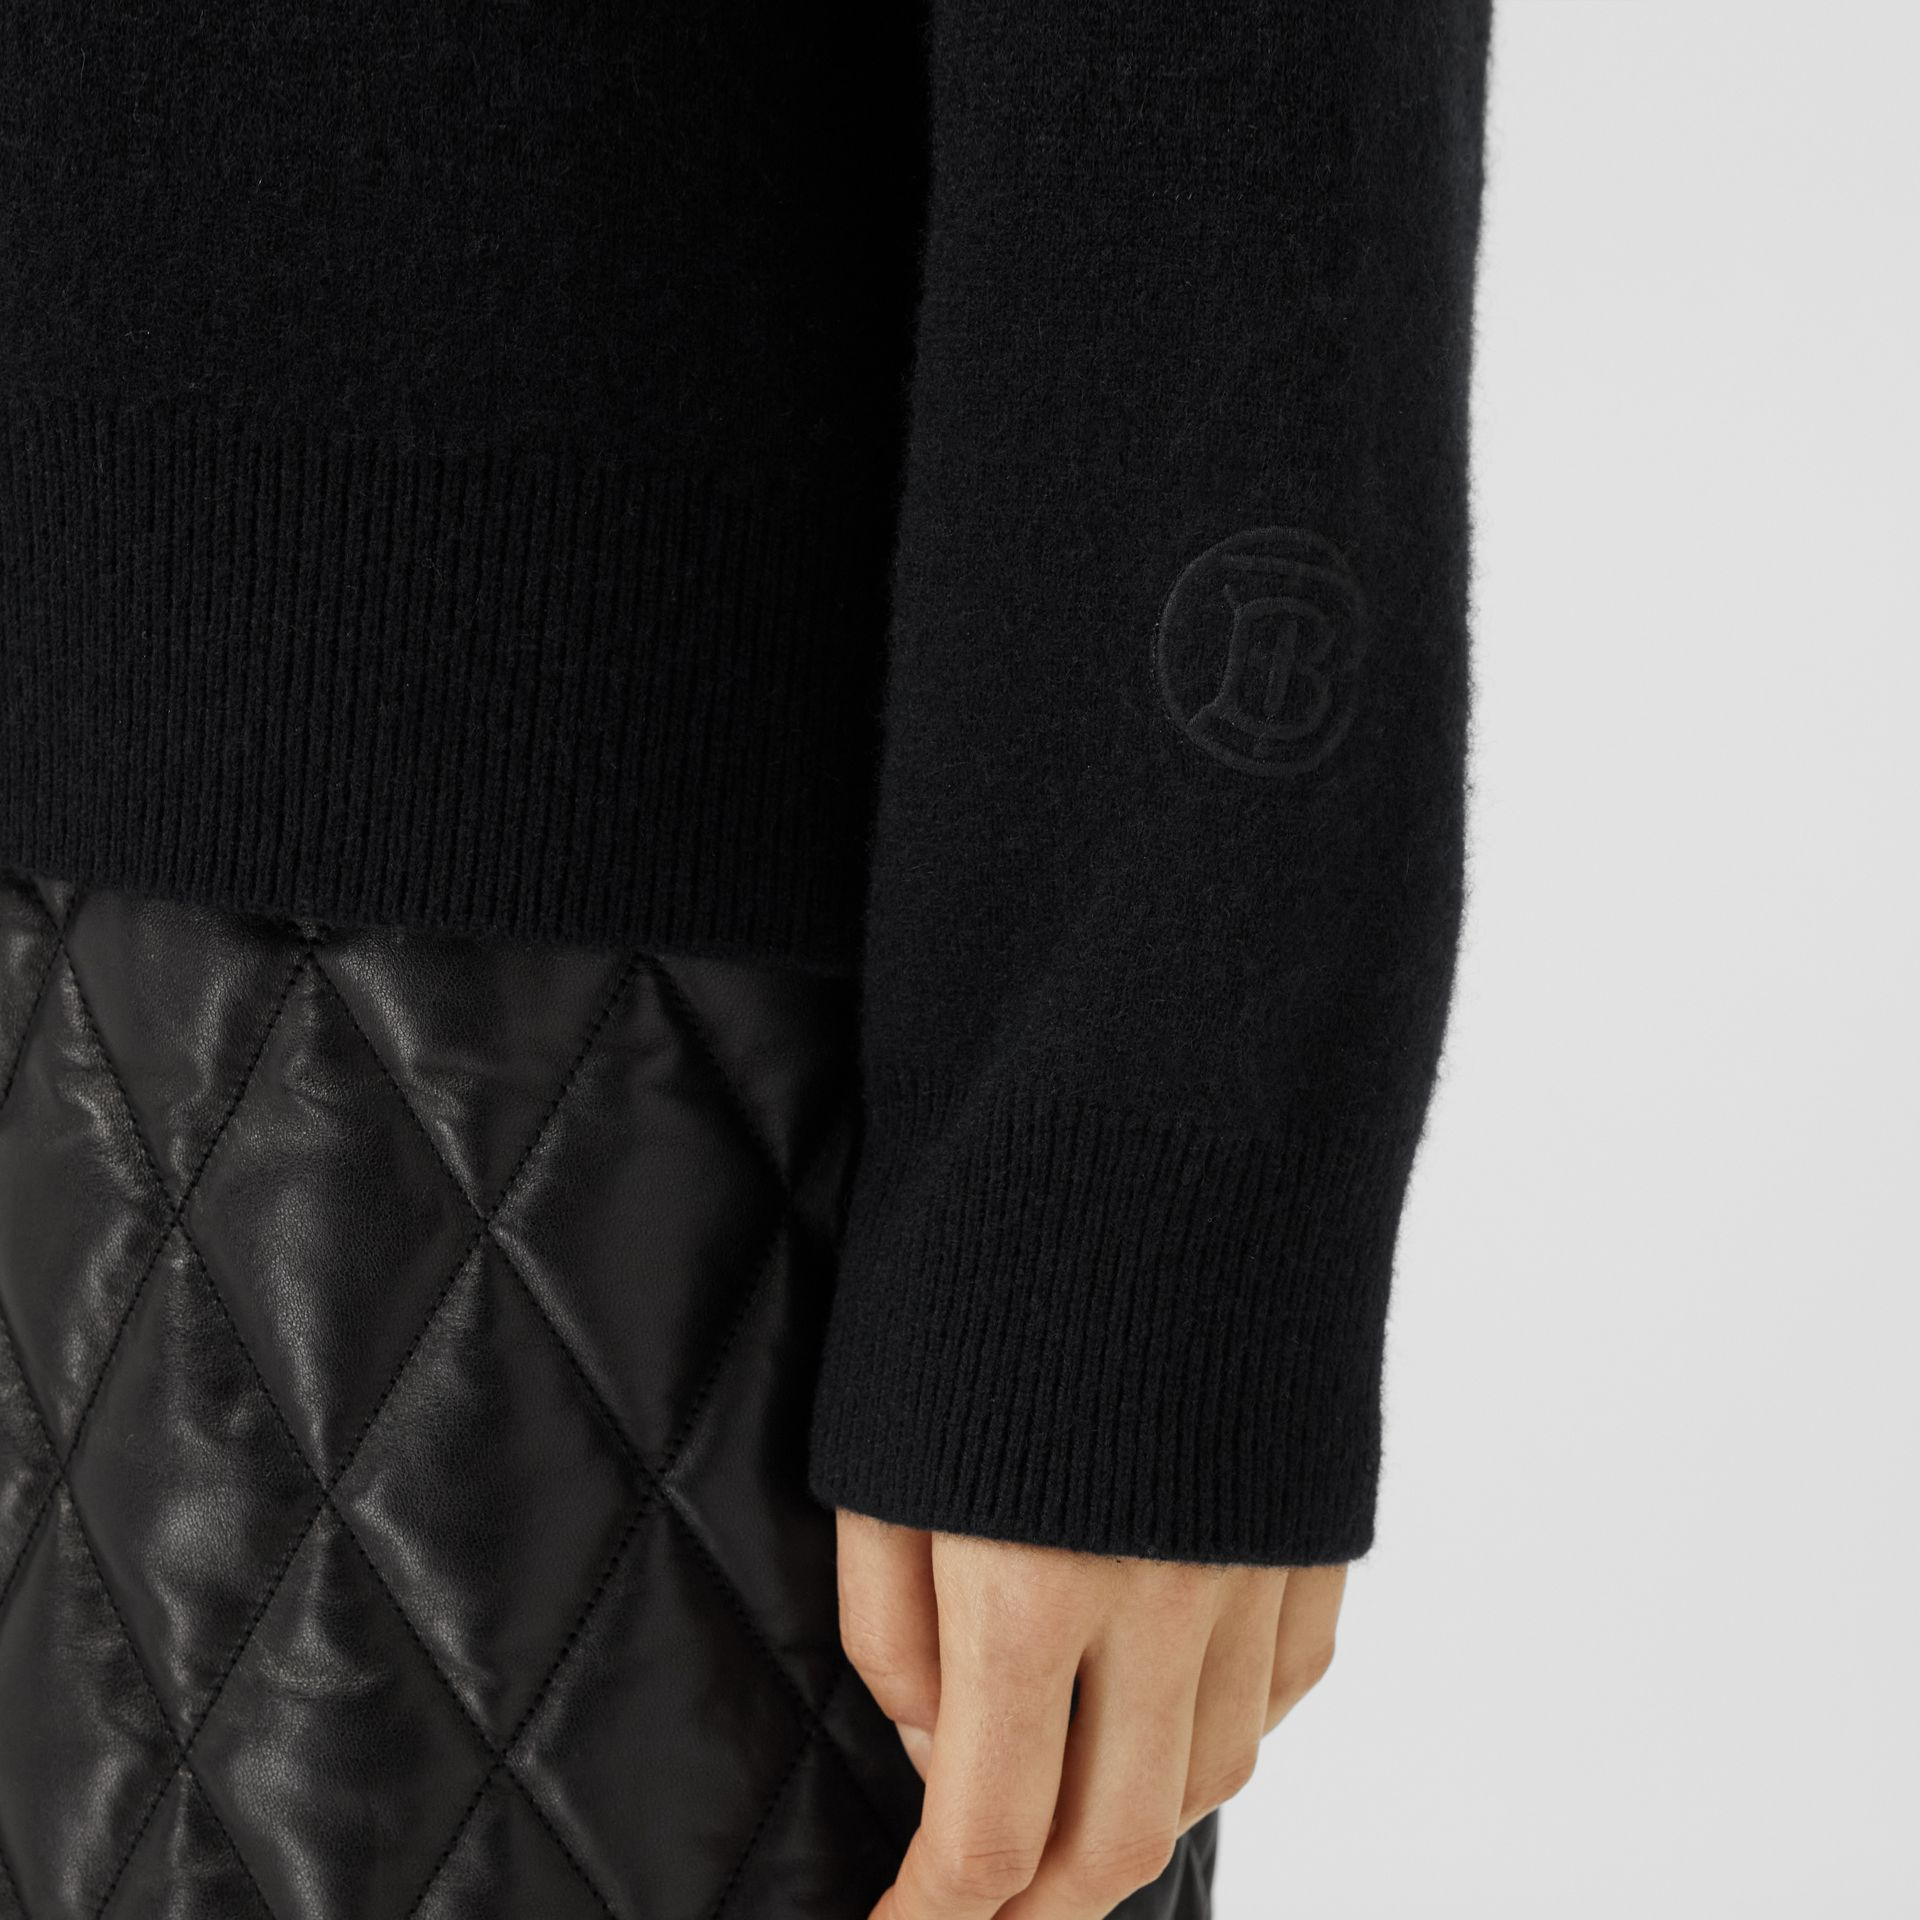 Monogram Motif Cashmere Blend Sweater in Black - Women | Burberry - gallery image 4